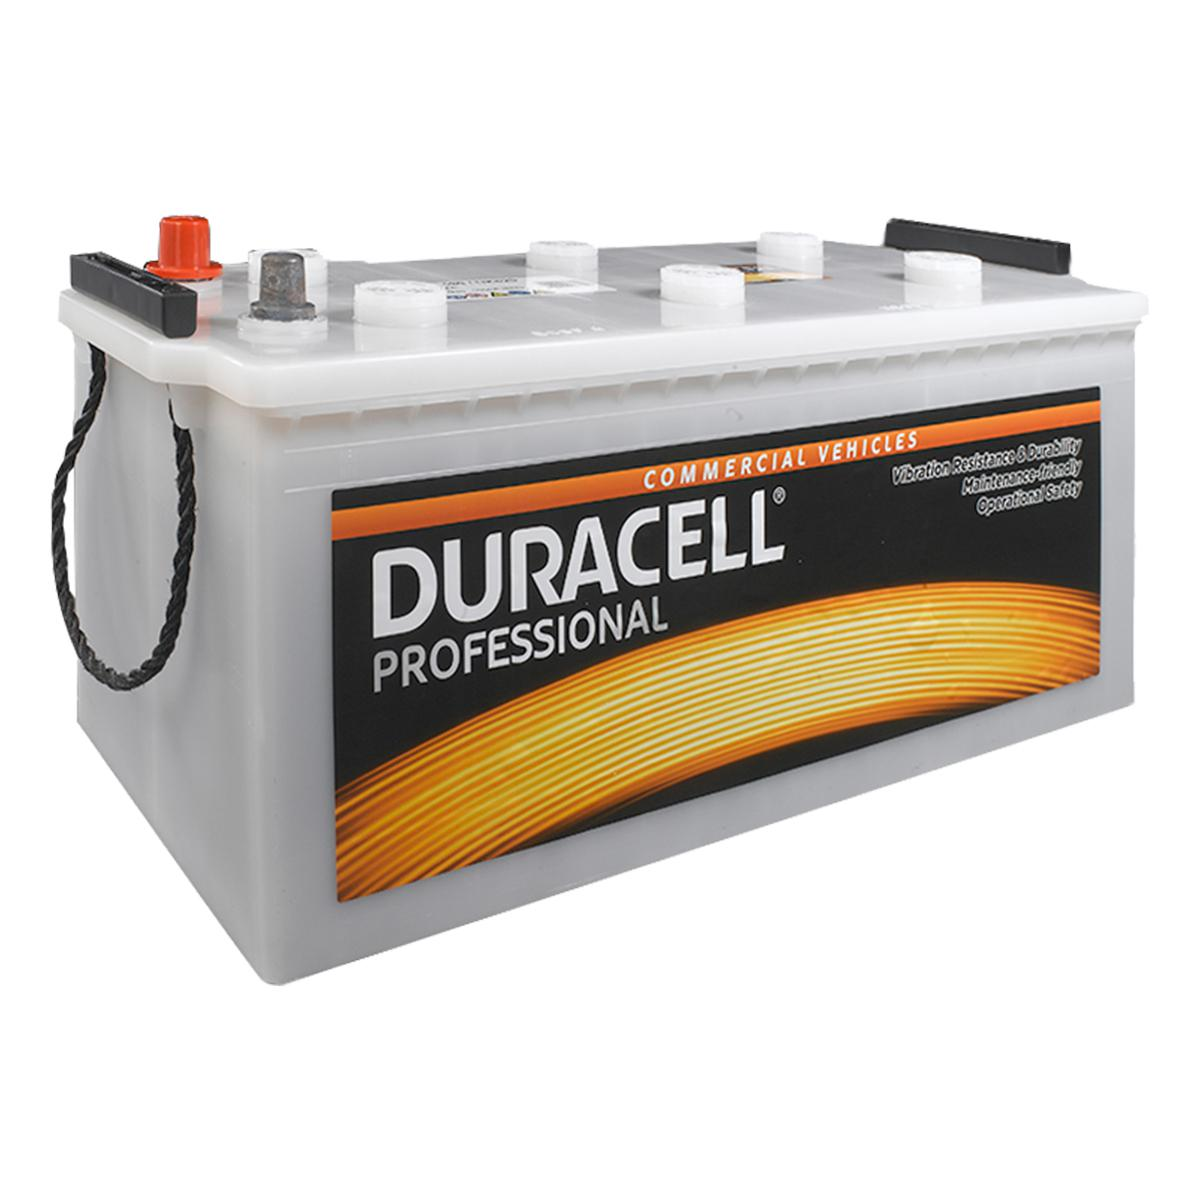 Duracell 637 / DP140 Professional Commercial Vehicle